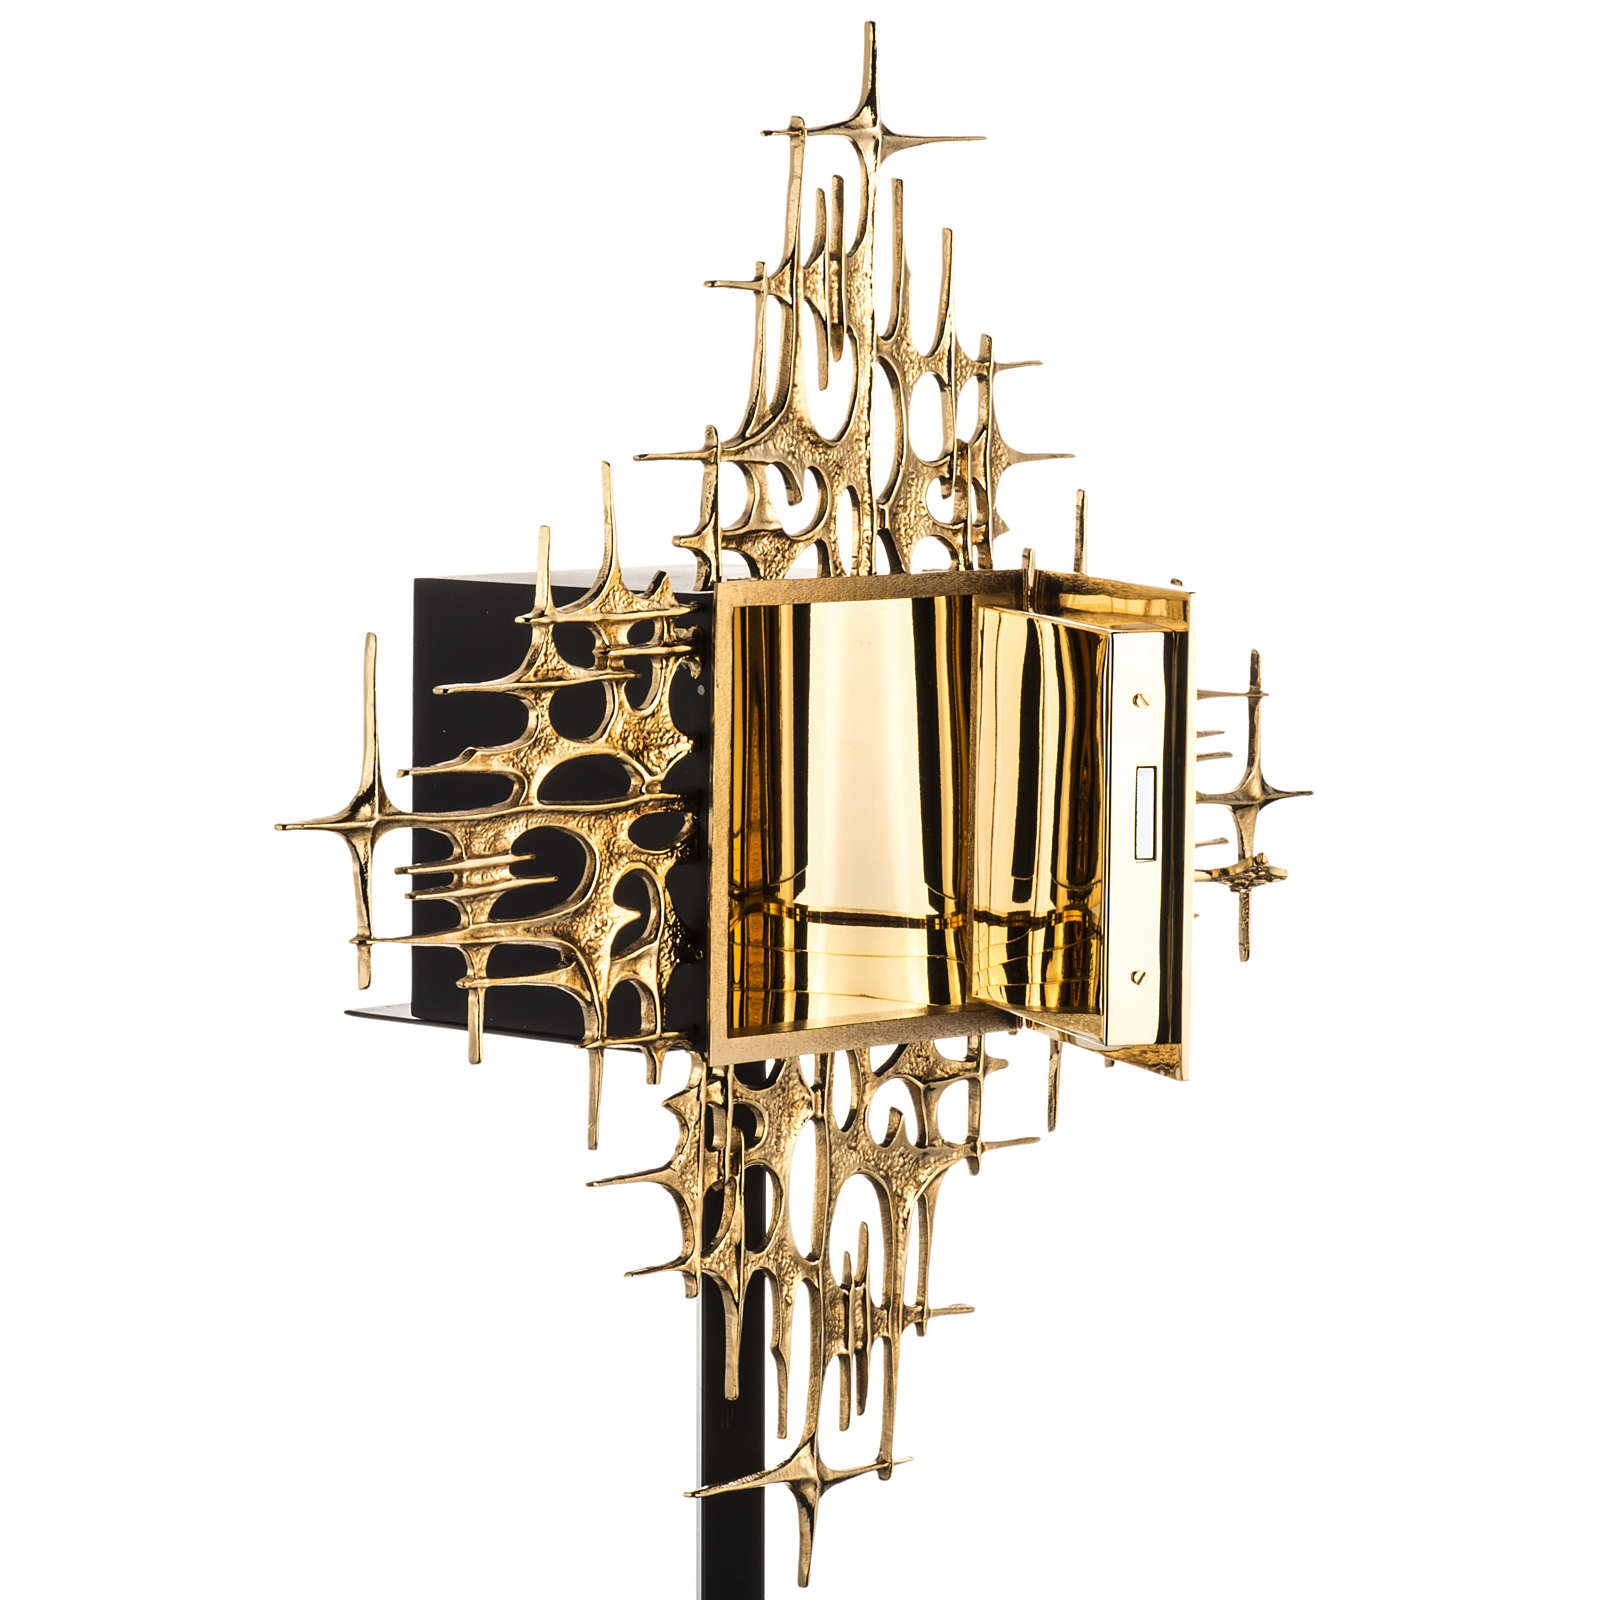 Wall Tabernacle with Supper at Emmaus in gold-plated cast brass 4